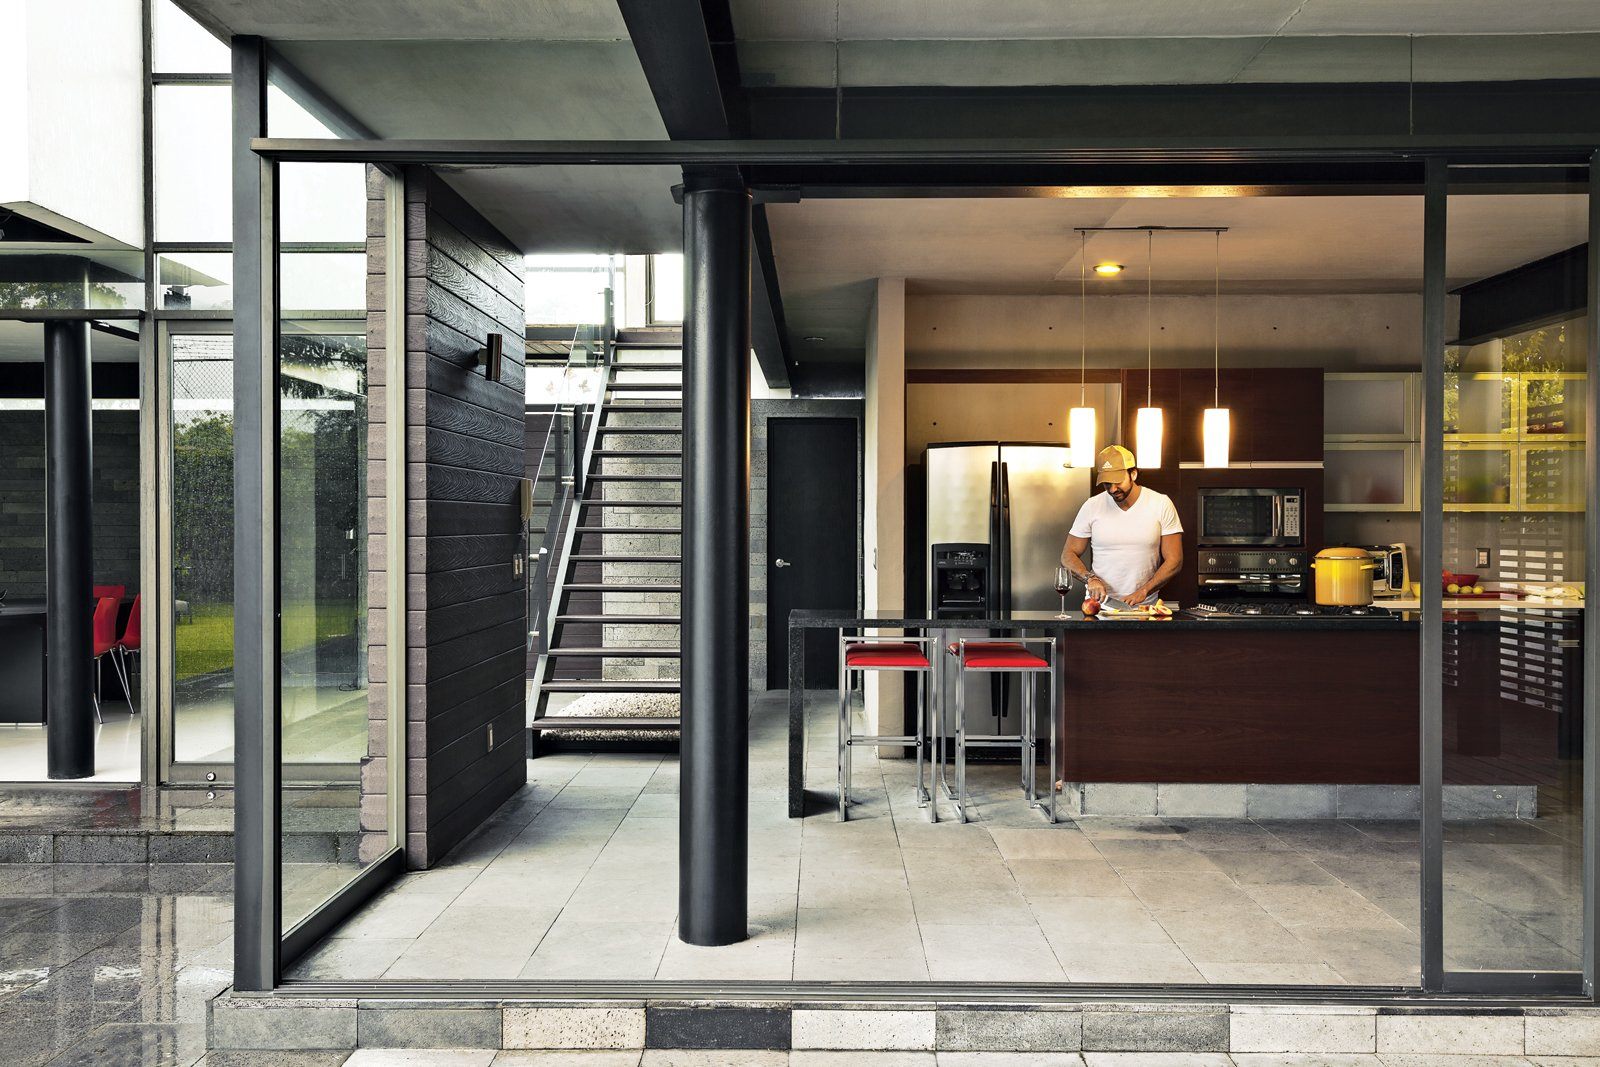 Kitchen, Granite Counter, Refrigerator, Pendant Lighting, and Wall Oven Alfredo chops away in the kitchen, which features floor-to-ceiling sliding glass walls.  Indoor-Outdoor Retreats in Mexico by Allie Weiss from An Affordable High-Design Vacation Home in Mexico